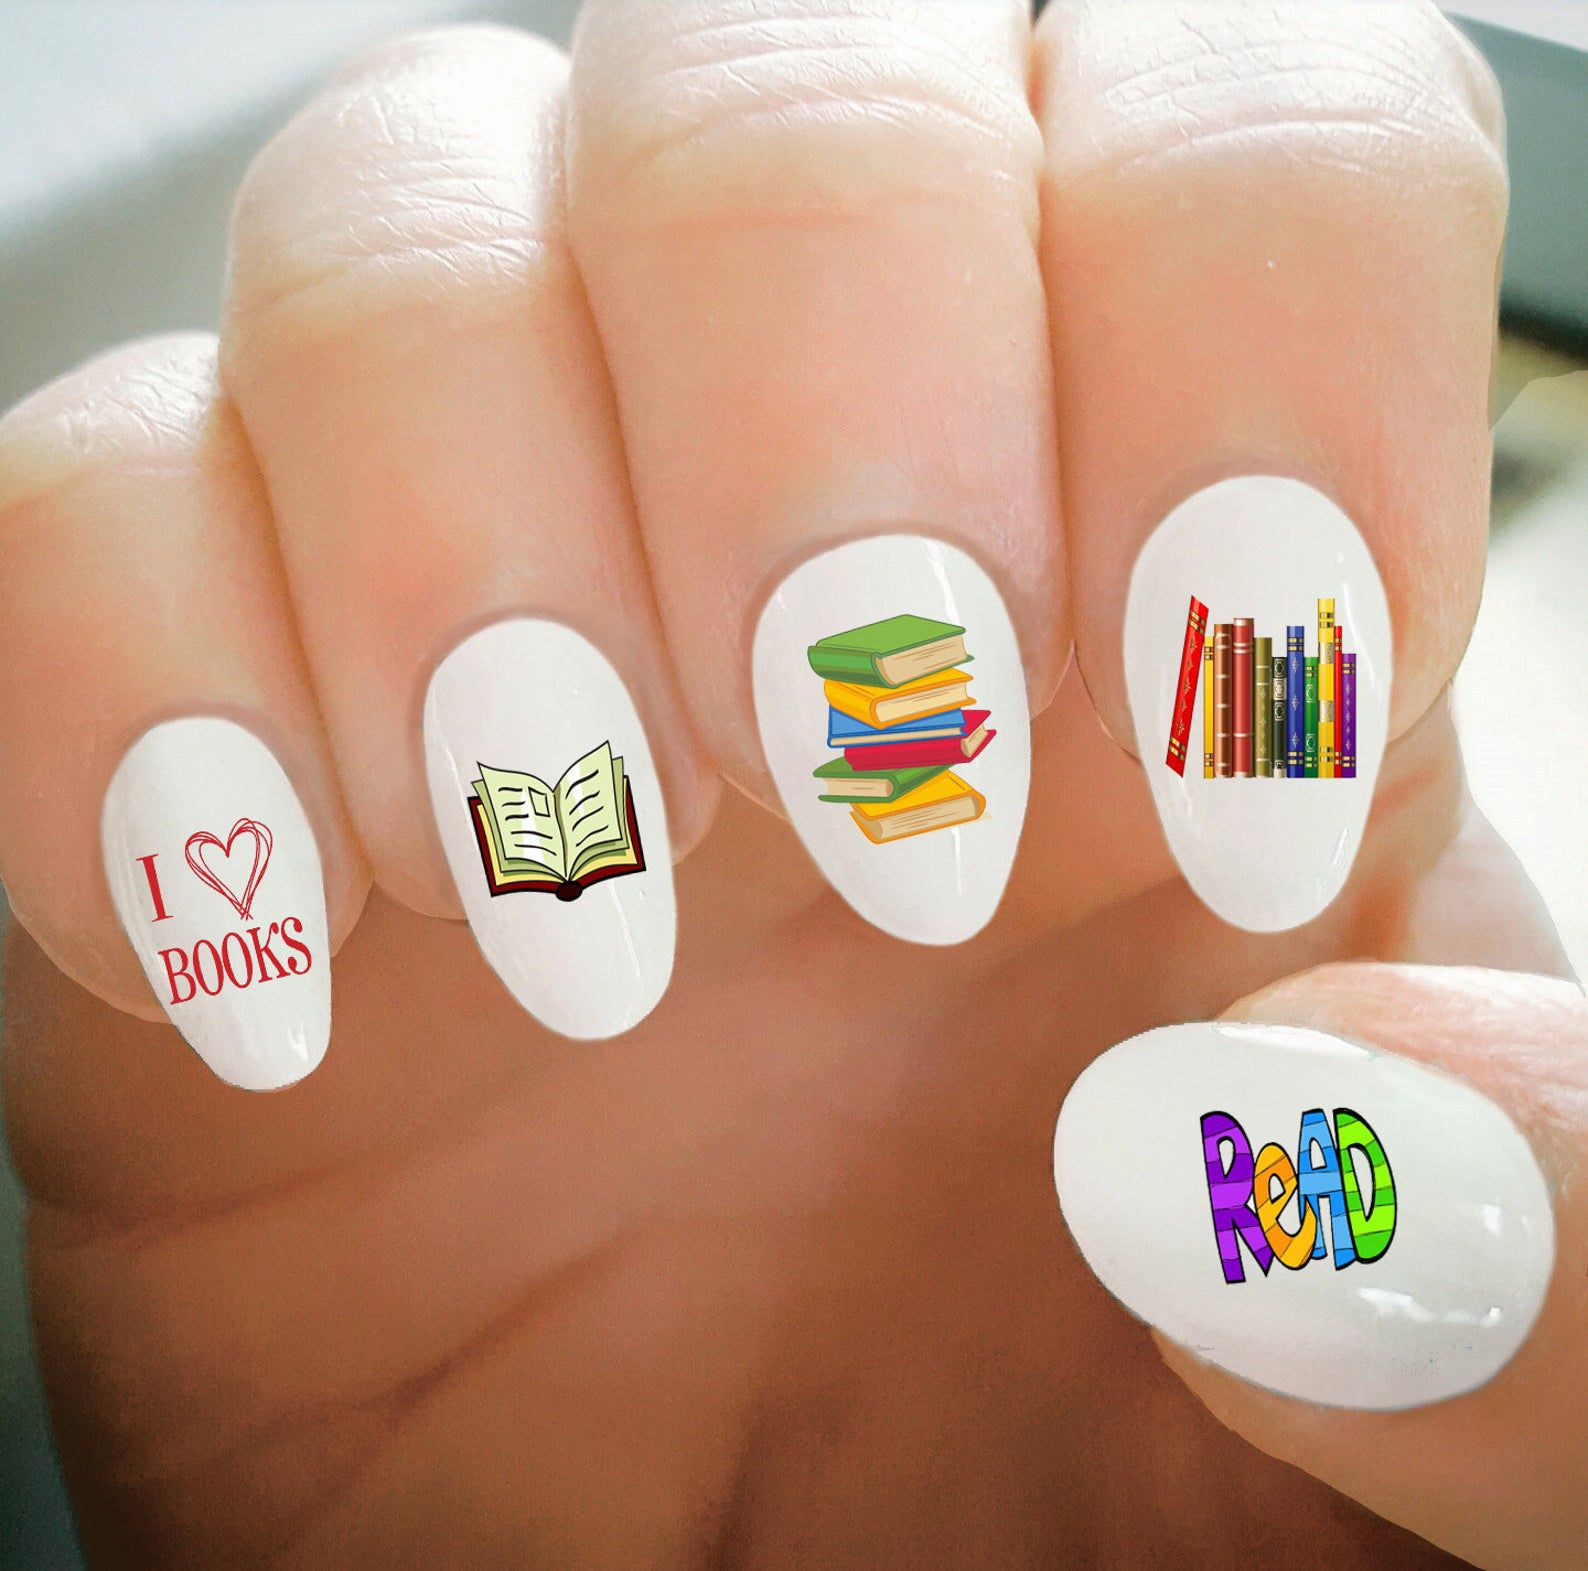 """Image of white nail decals reading """"I love books"""" and """"read."""""""